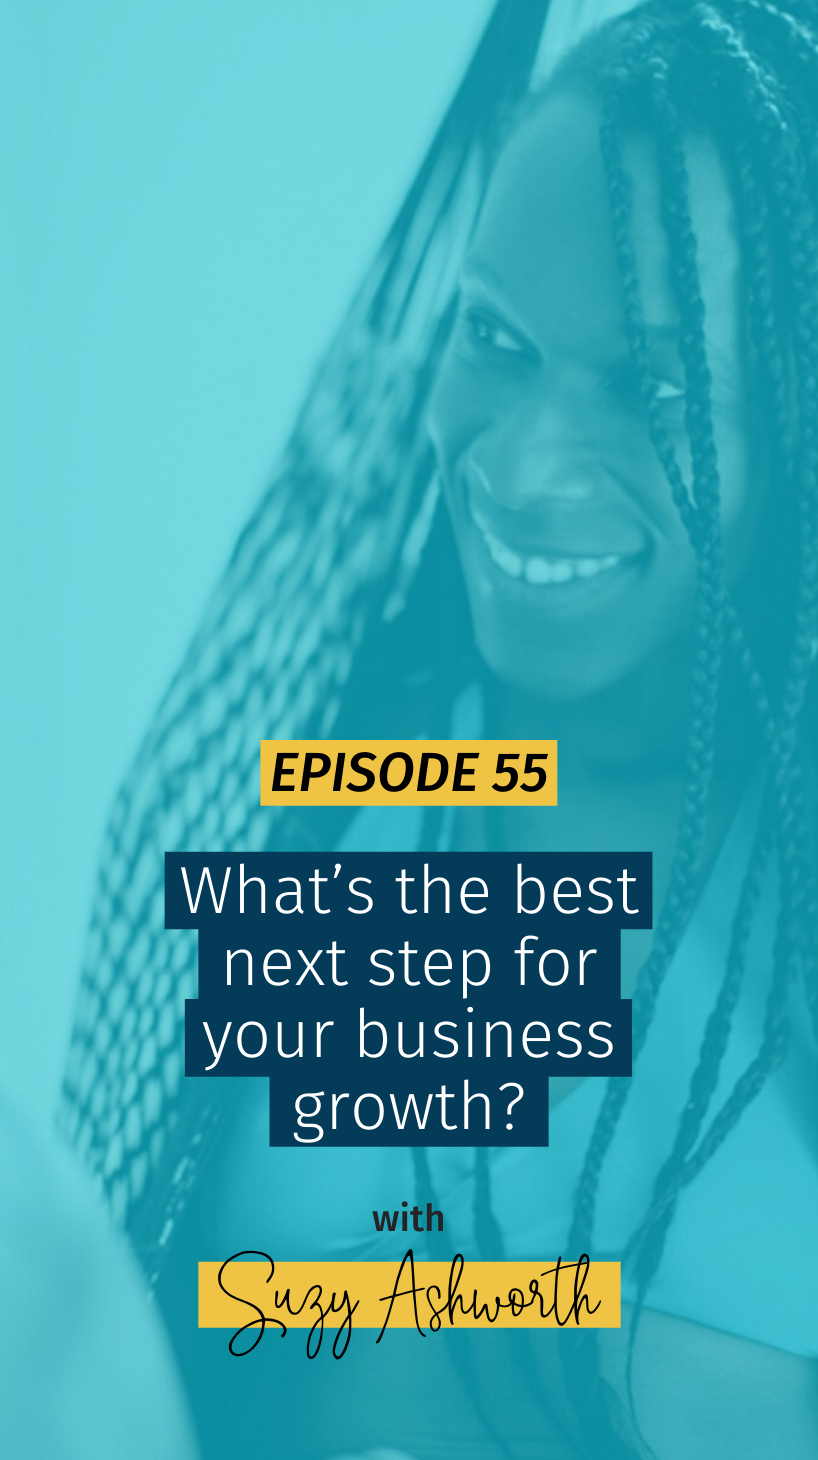 055 What's the best next step for your business growth?